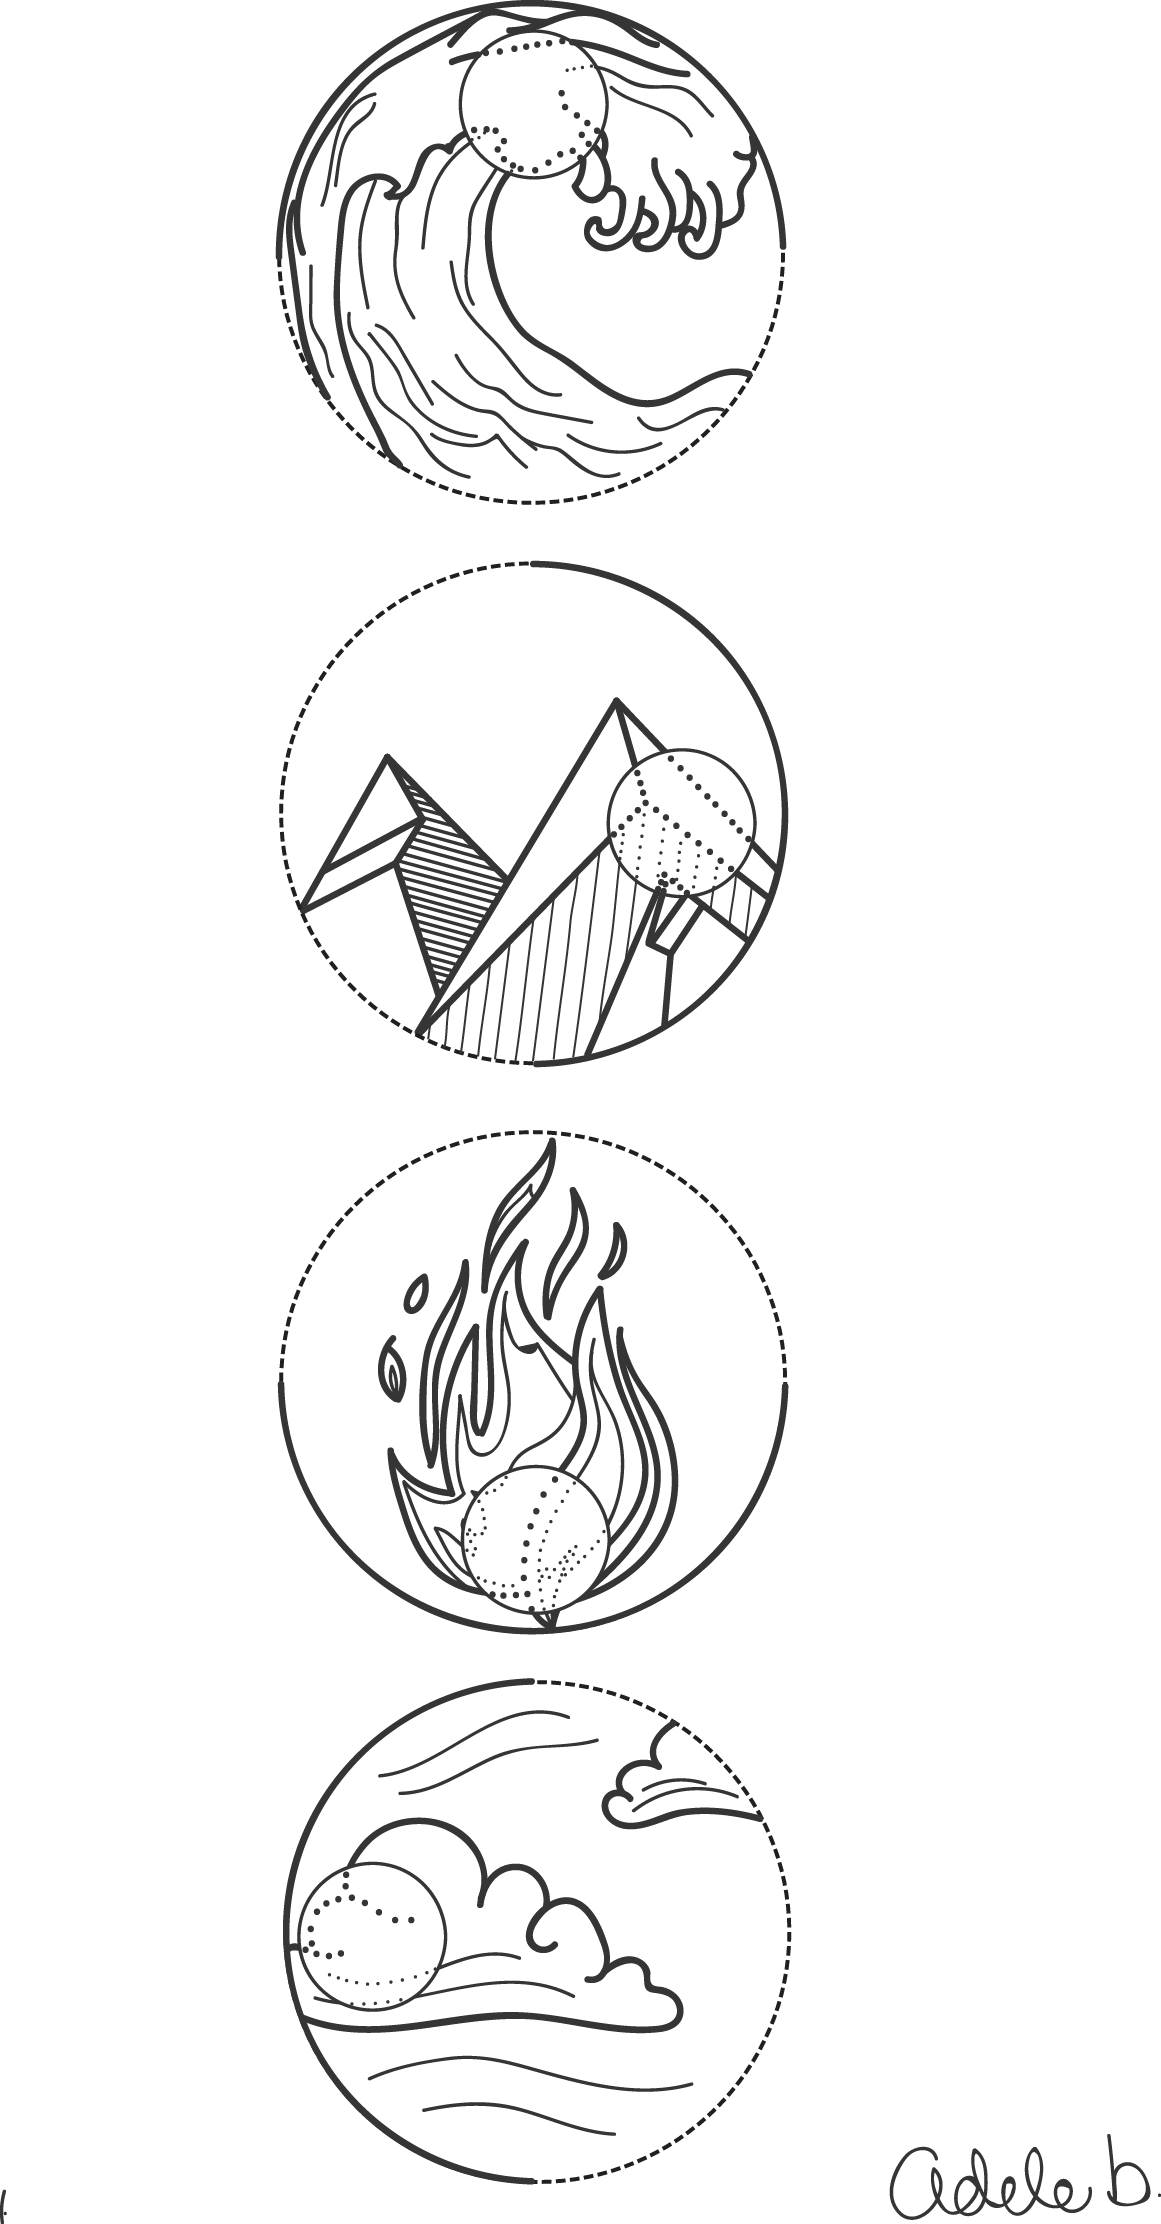 4 element symbols water earth fire and air tattoo idea no 1 4 element symbols water earth fire and air tattoo idea no 1 biocorpaavc